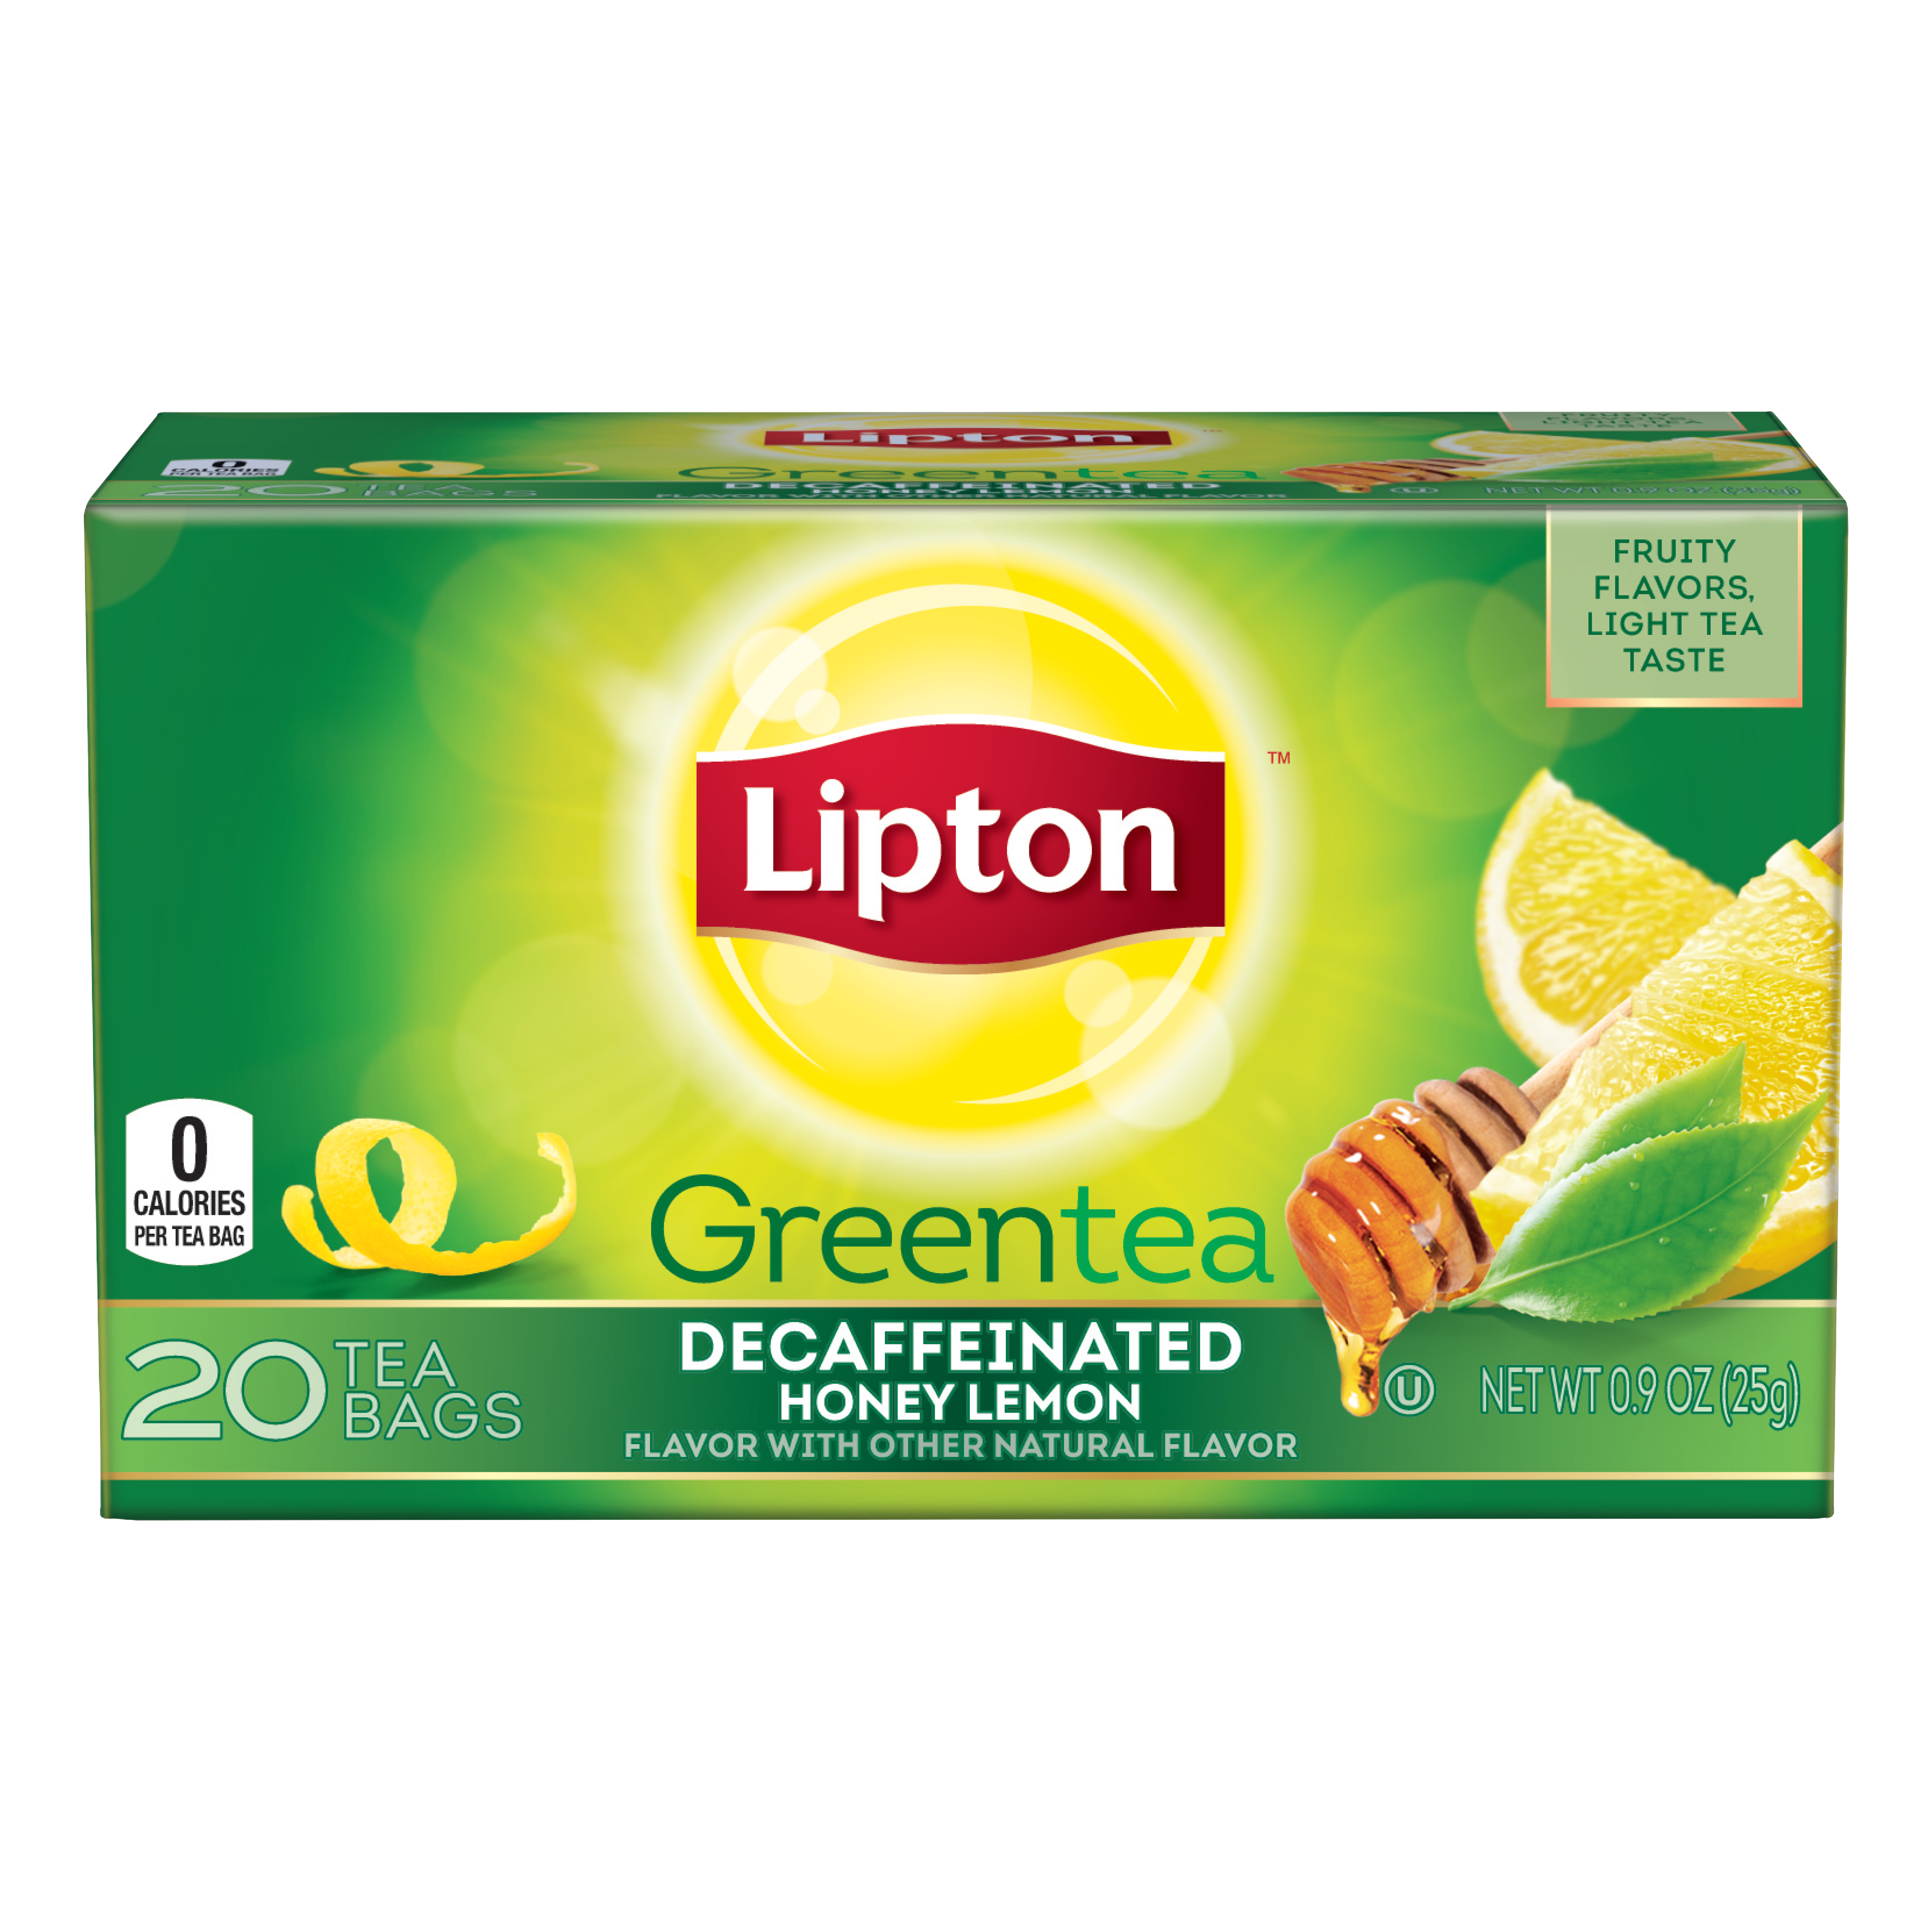 green tea of lipton tea Lipton's matcha green tea blends are made with 100% natural rainforest alliance certified tea leaves and matcha powder as far as flavor is concerned, this is a refreshing and easy to drink tea with a smooth and mellow finish.